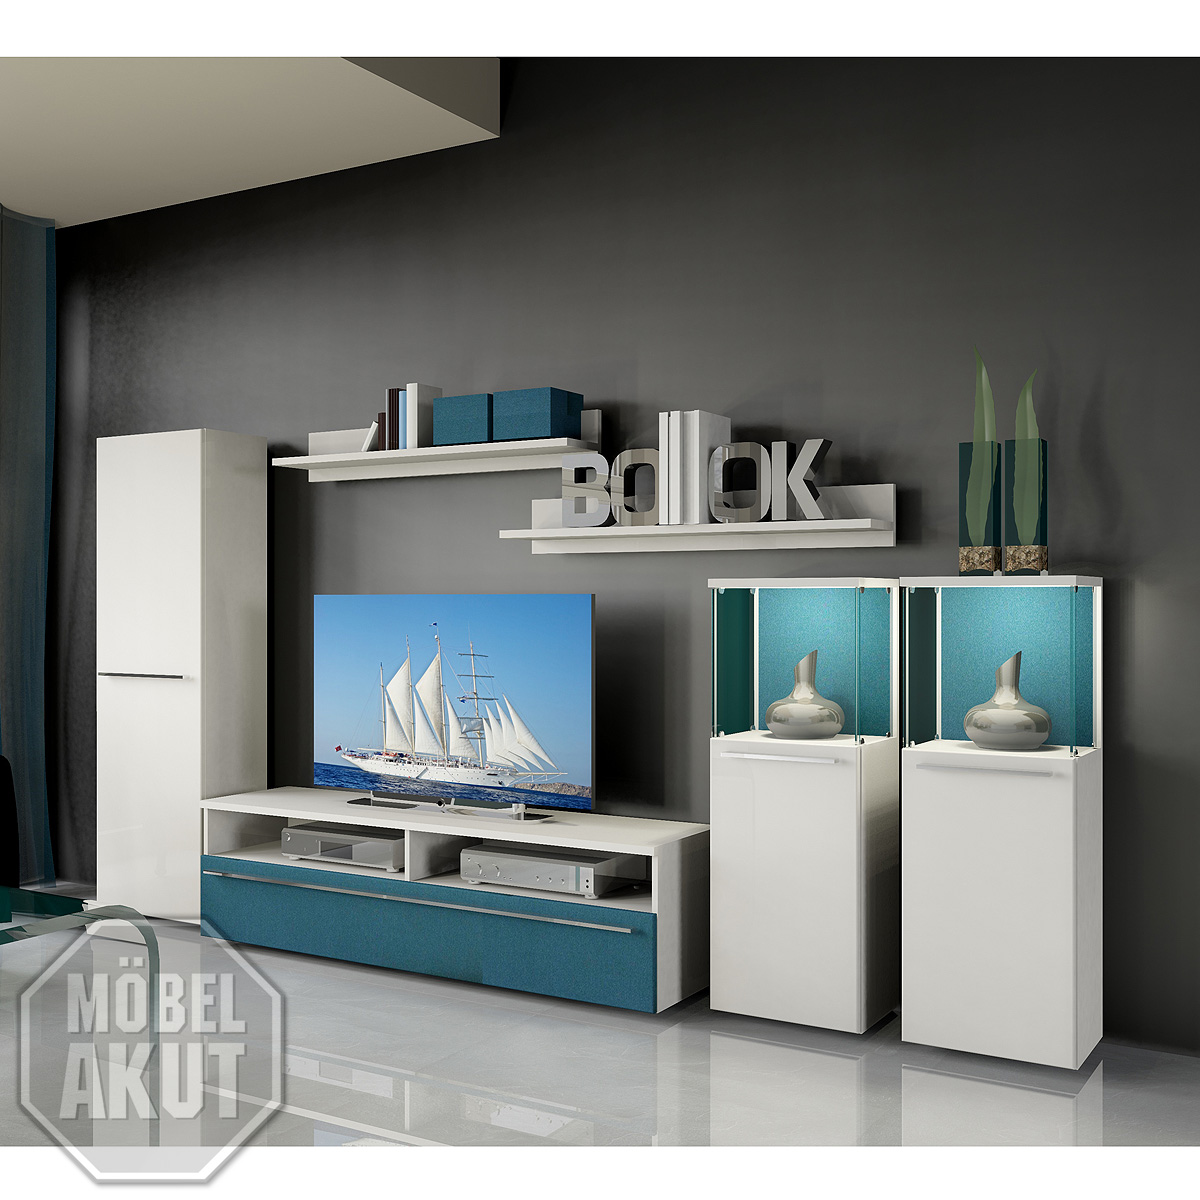 wohnwand 5 six pack anbauwand wohnzimmer in wei petrol blau neu ebay. Black Bedroom Furniture Sets. Home Design Ideas